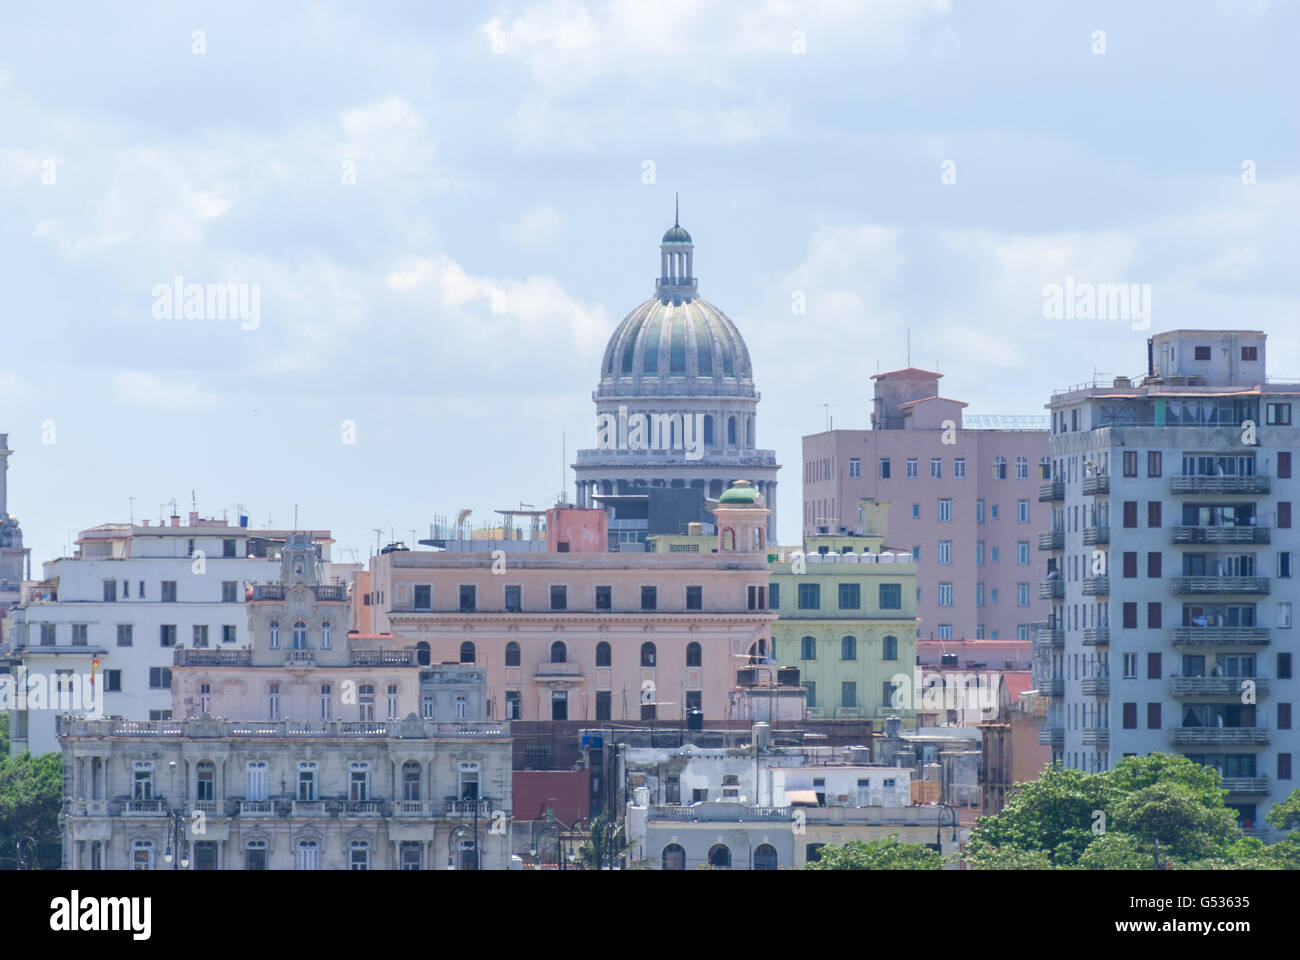 Cuba, Havana, view from Casablanca to the Capitolio - Stock Image